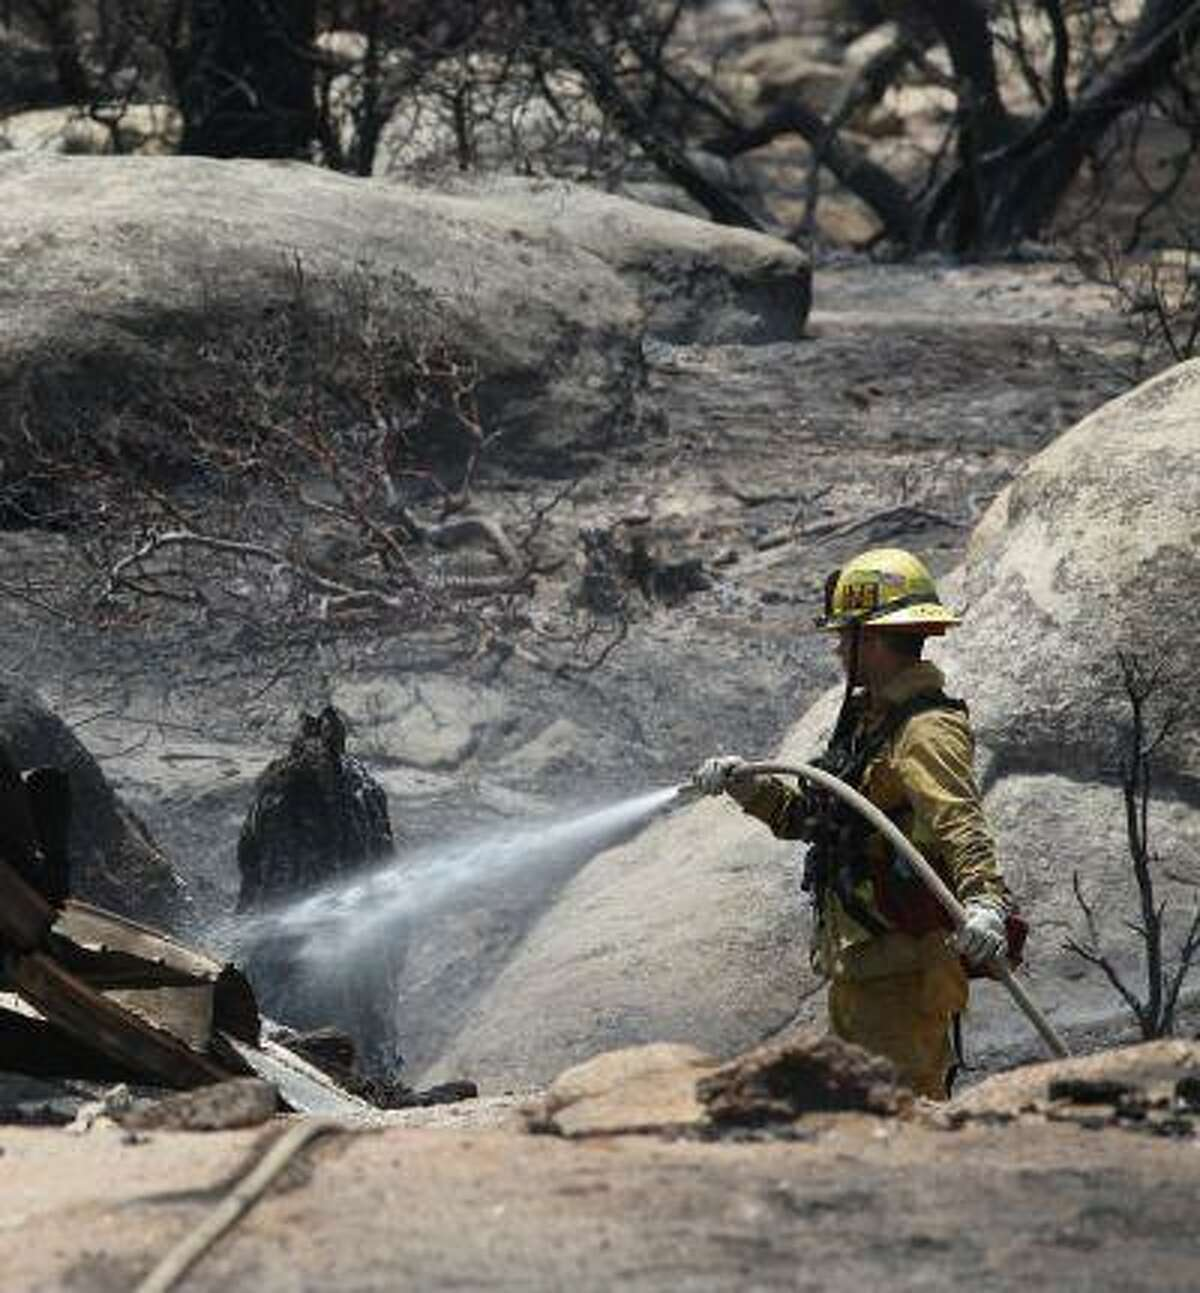 A Rancho Cucamonga firefighter mops up an area in Pine Springs Ranch in Mountain Center, Calif. Thursday, July 18, 2013, as crews continue to battle the Mountain Fire.